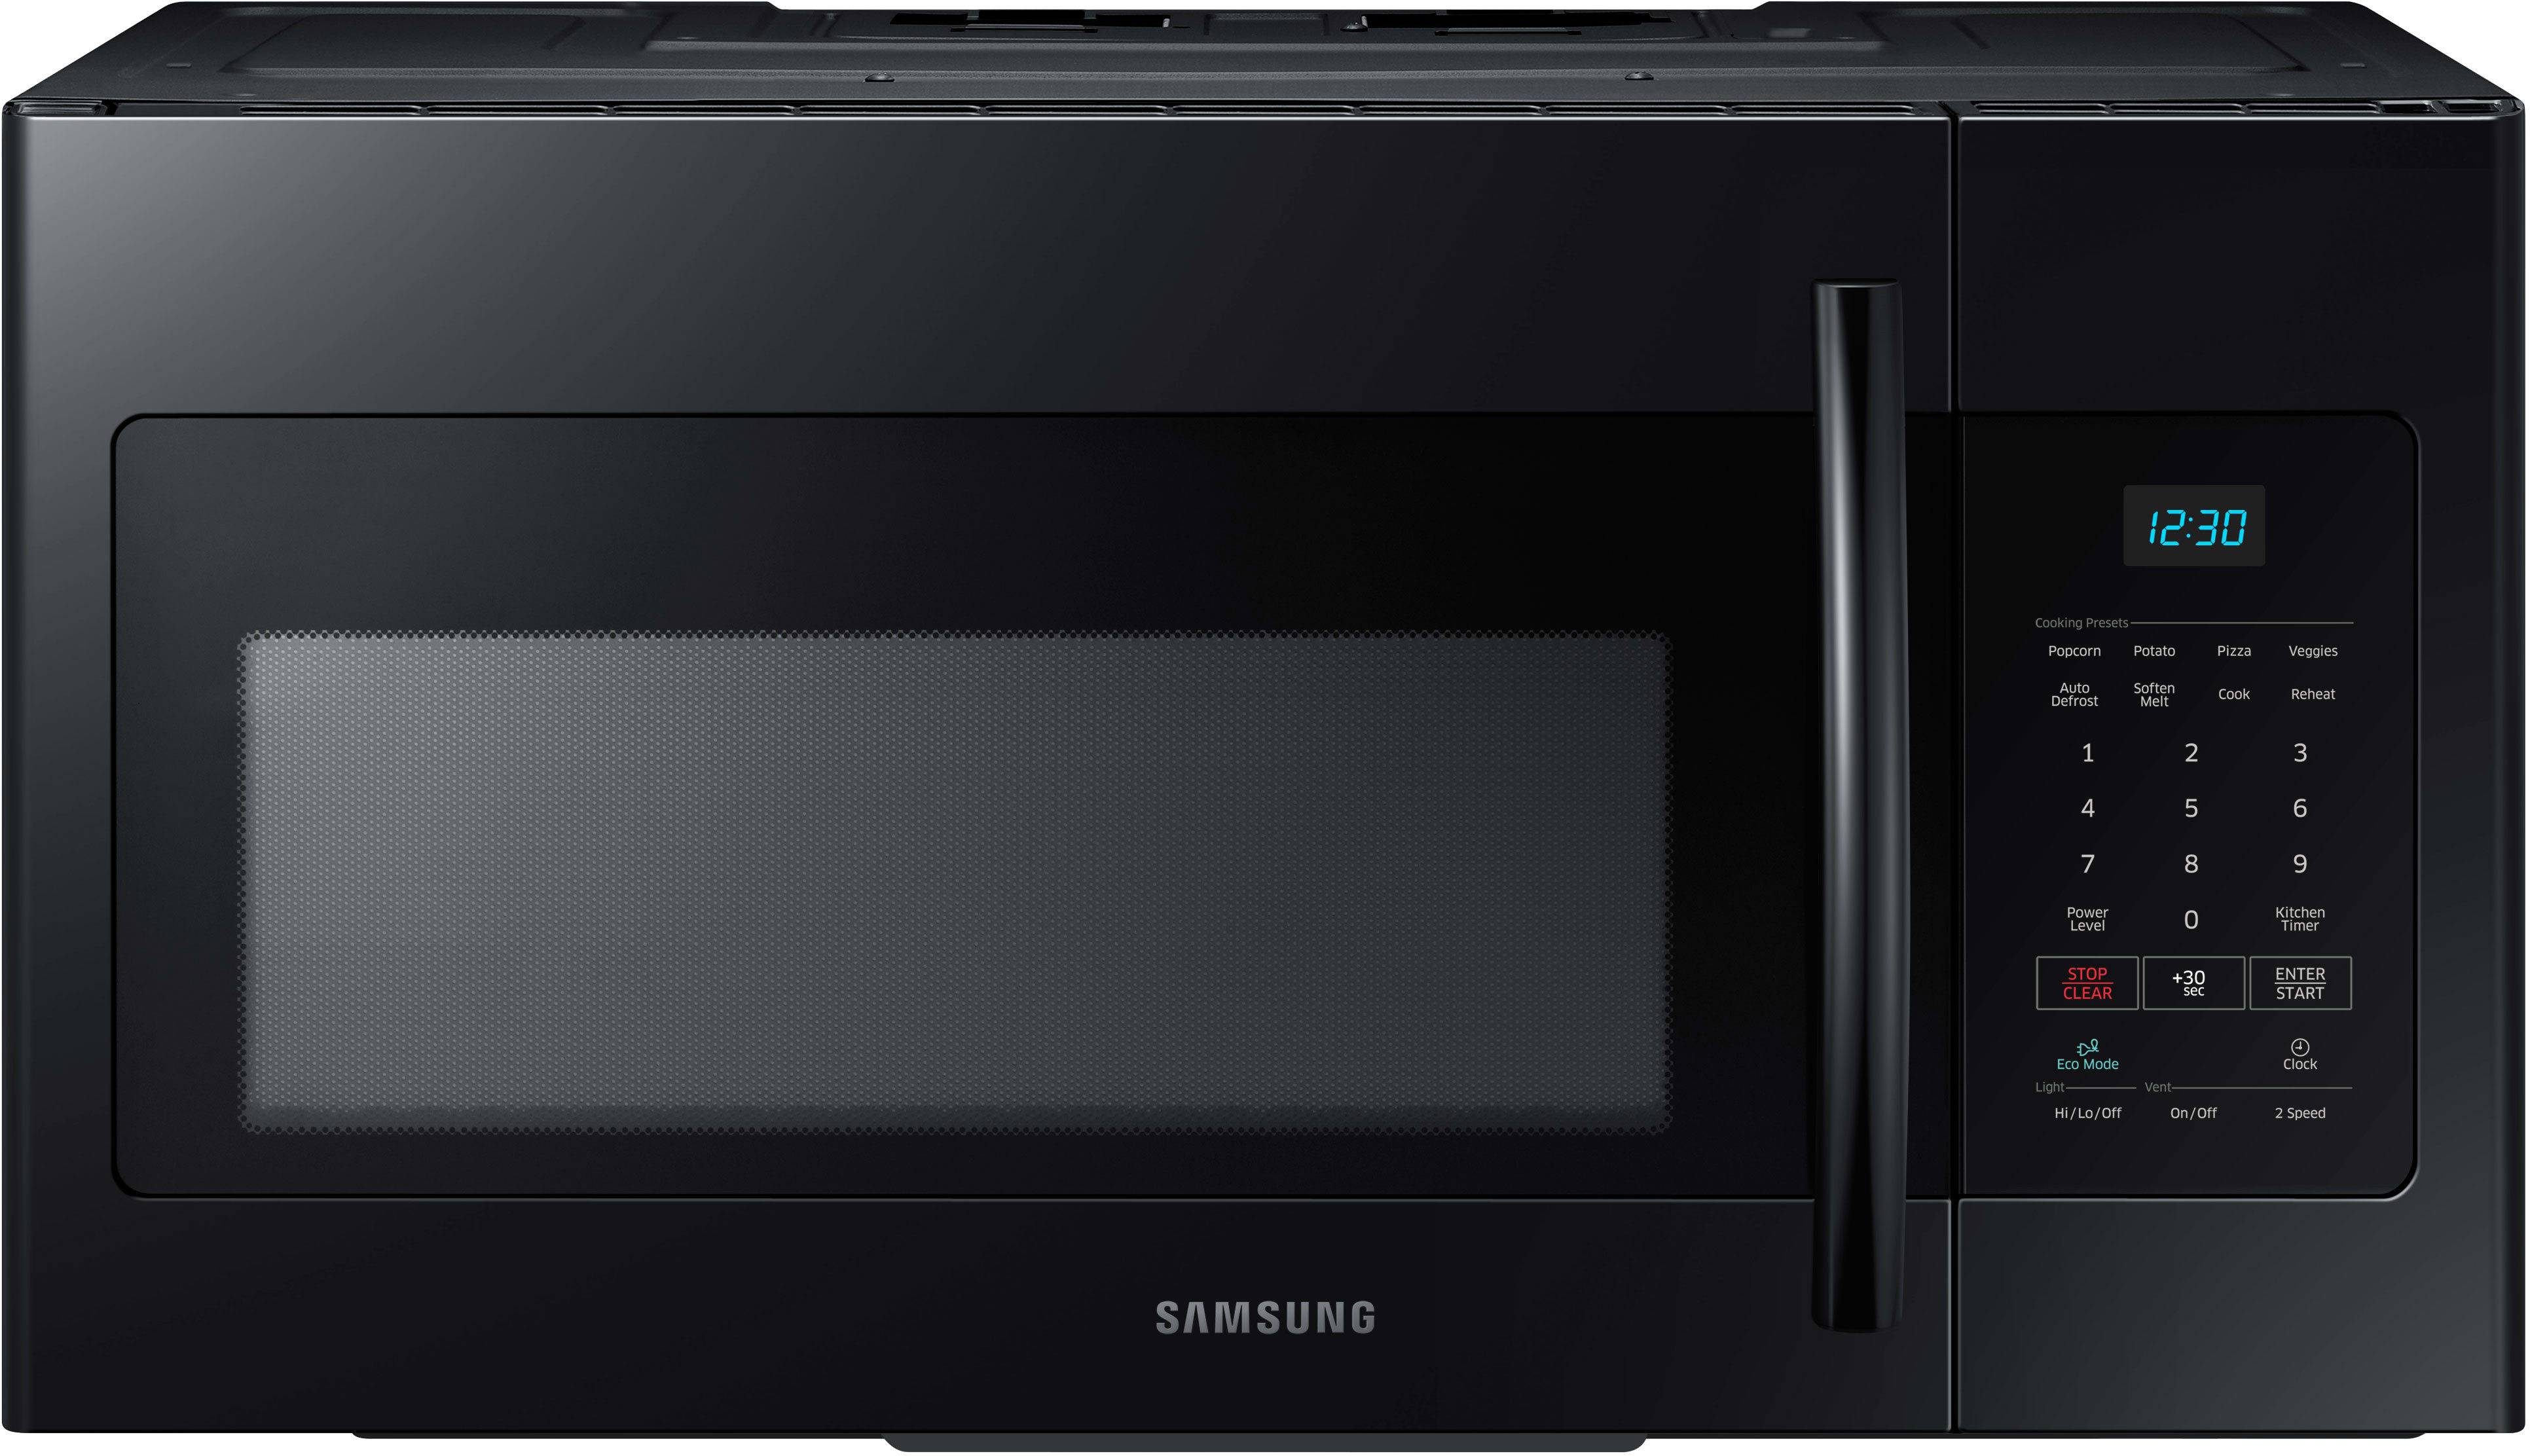 Samsung Me16h702seb 1 6 Cu Ft Over The Range Microwave